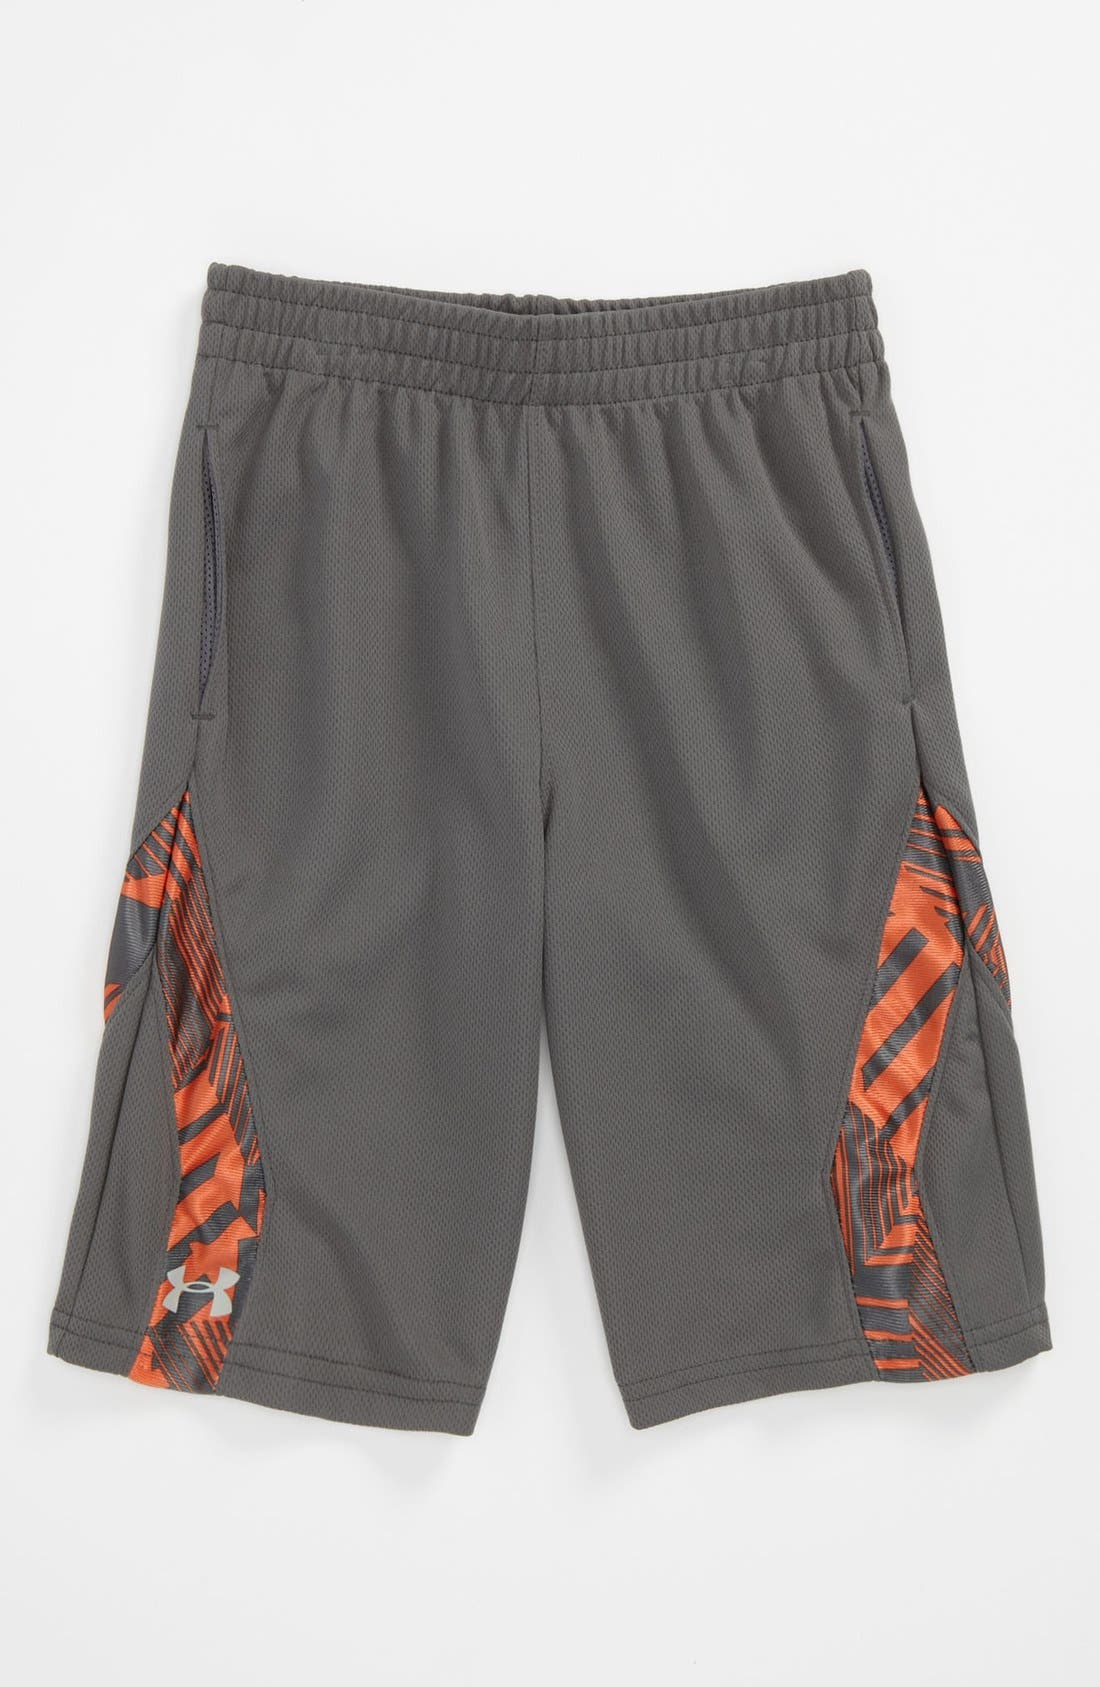 Alternate Image 1 Selected - Under Armour Shorts (Little Boys)